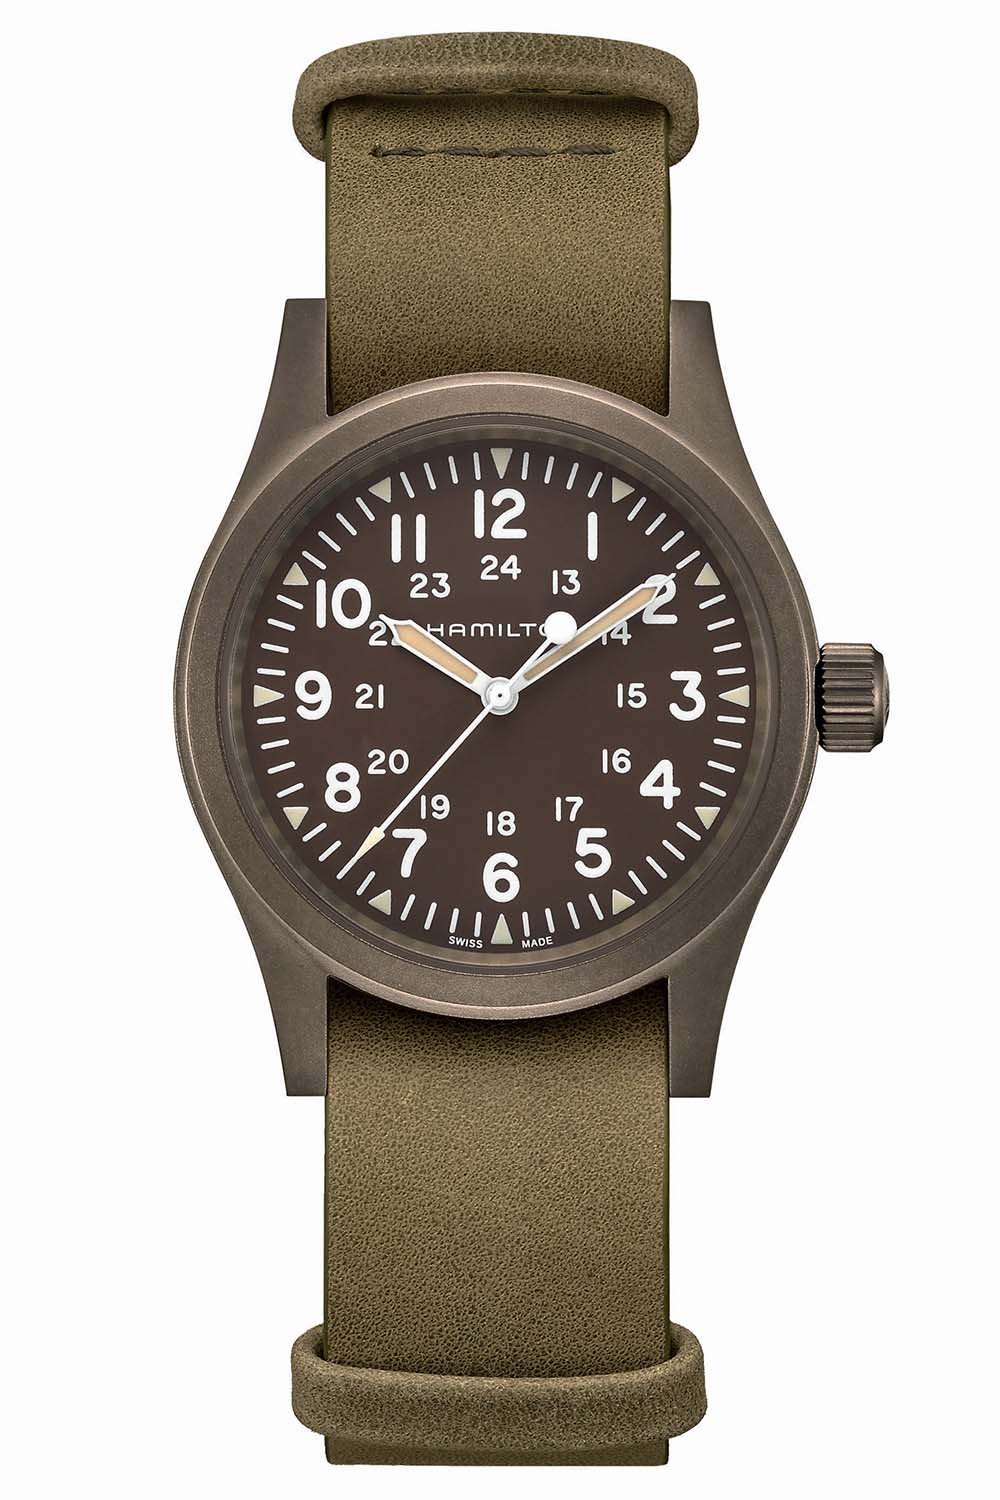 Hamilton Khaki Field Mechanical 2019 - 9